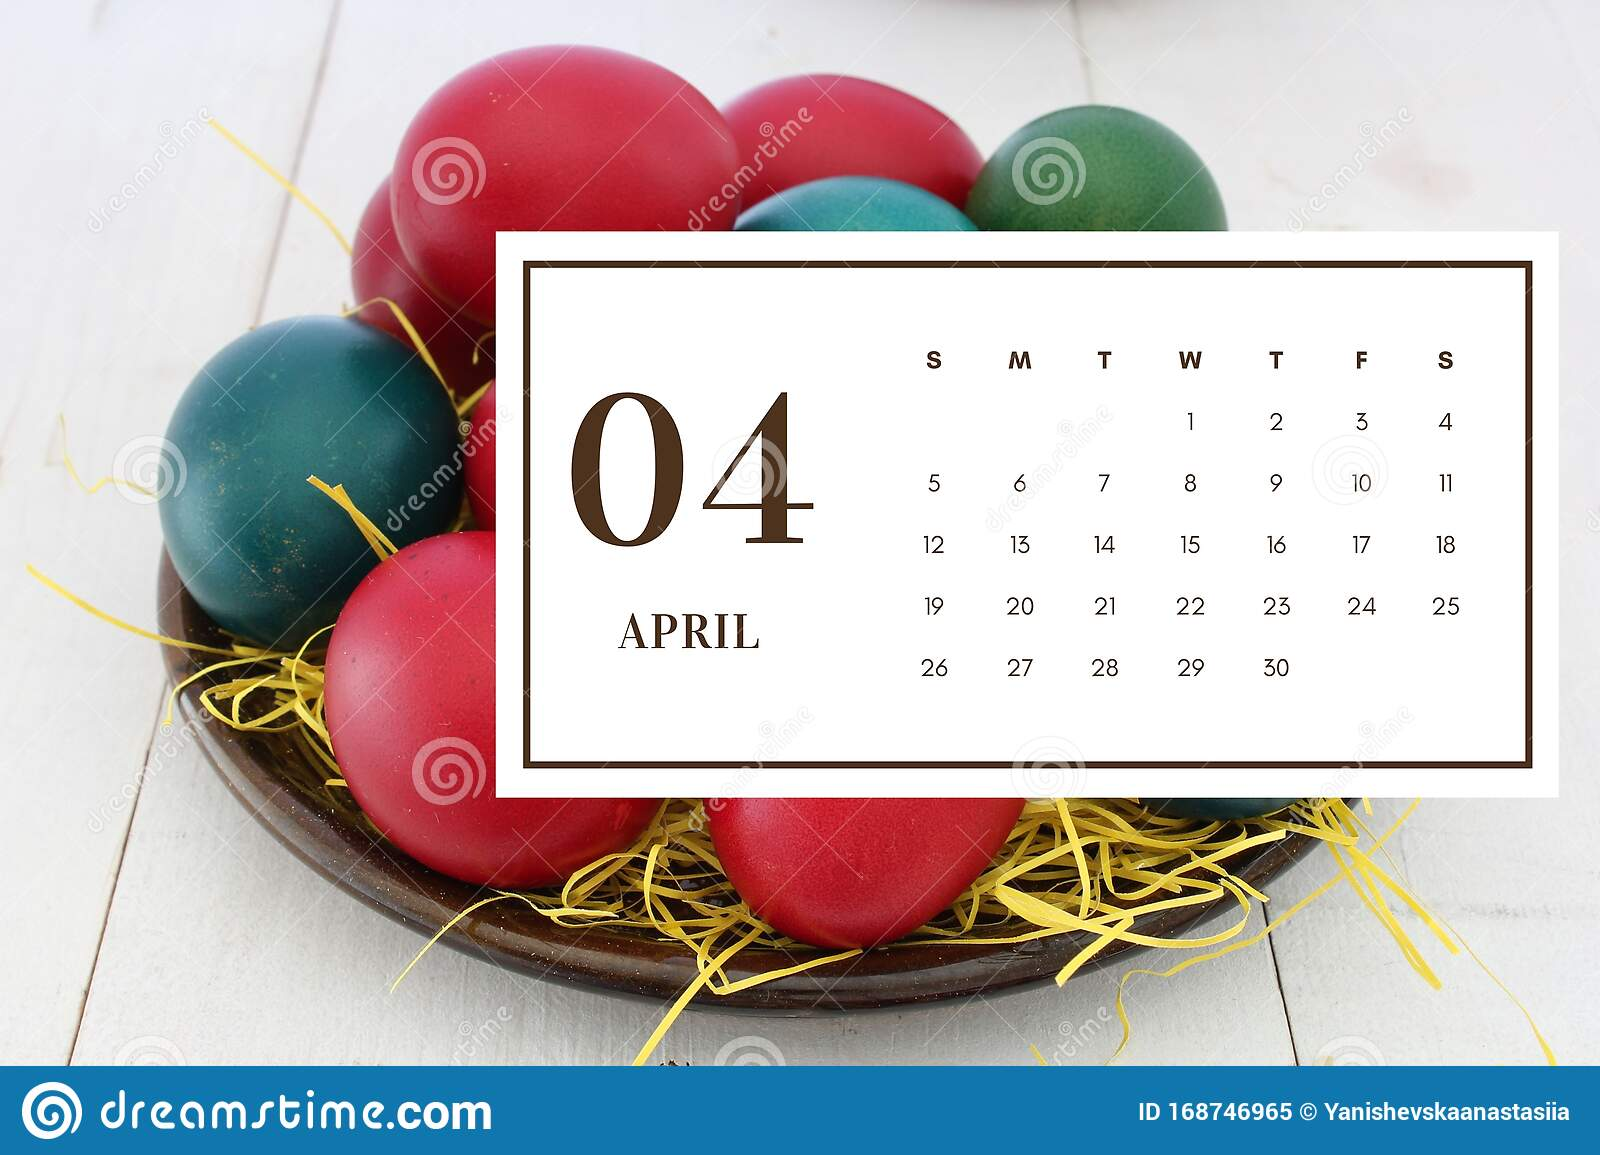 April 2020 Monthly Calendar Wallpaper Stock Image Image Of Blue